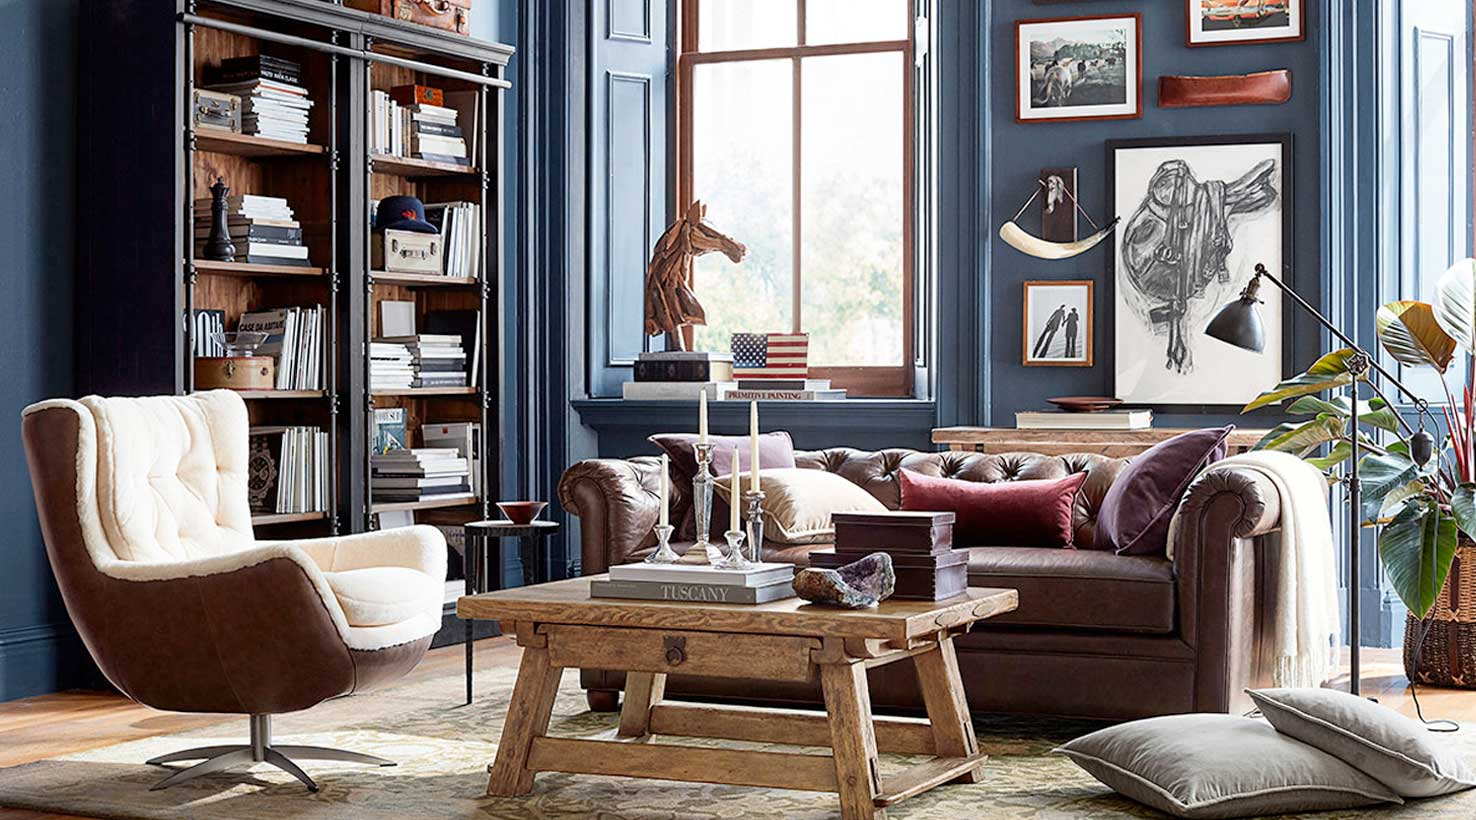 Living room paint color ideas inspiration gallery sherwin williams for Painting color ideas for living room